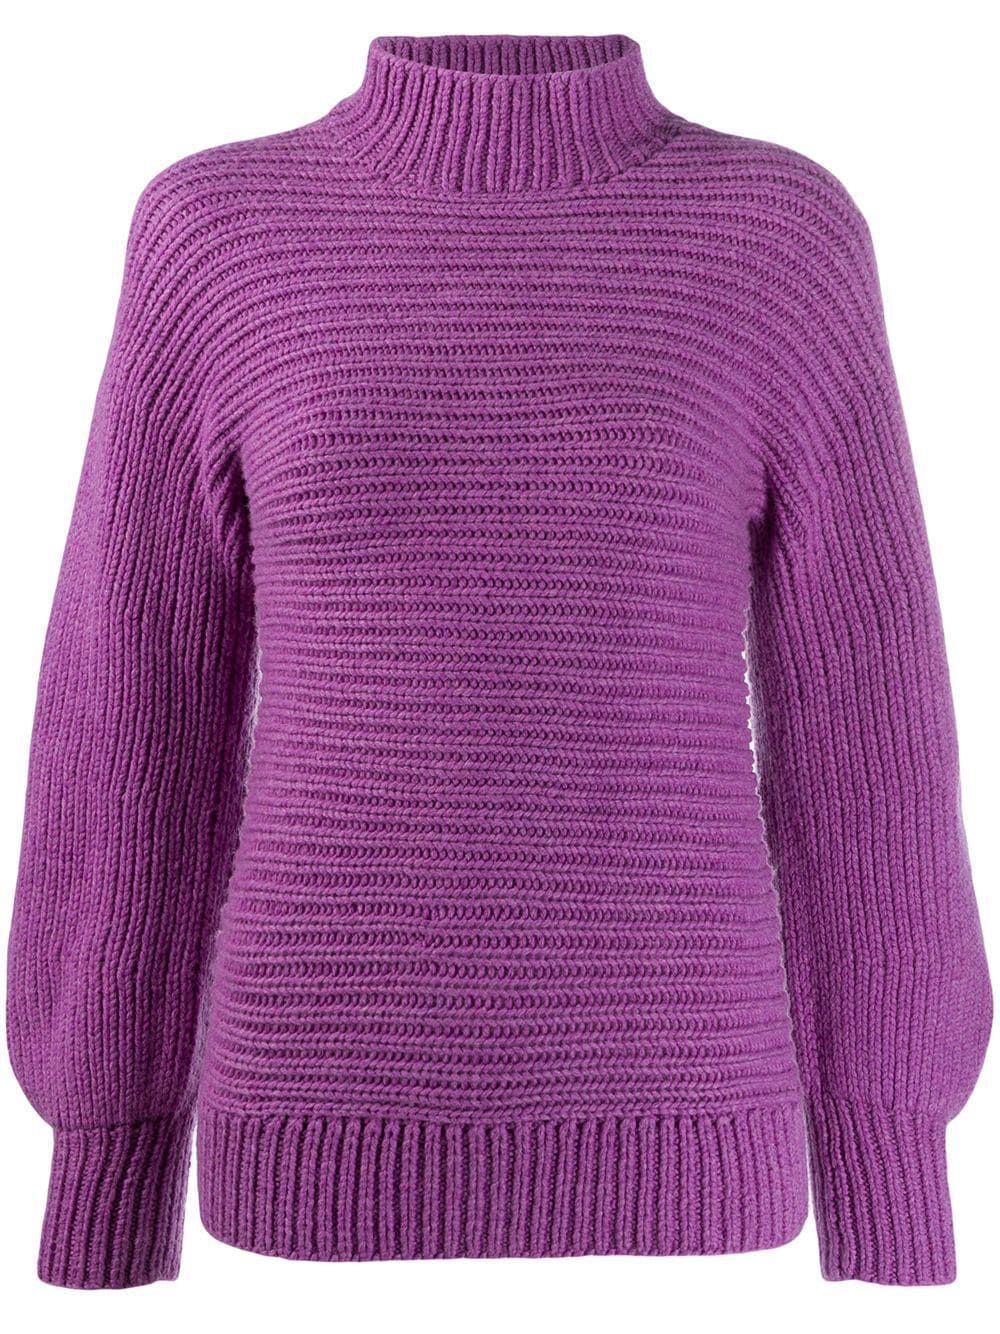 Christian Wijnants Chunky Knit Jumper #chunkyknitjumper Christian Wijnants chunky knit jumper - Purple #chunkyknitjumper Christian Wijnants Chunky Knit Jumper #chunkyknitjumper Christian Wijnants chunky knit jumper - Purple #chunkyknitjumper Christian Wijnants Chunky Knit Jumper #chunkyknitjumper Christian Wijnants chunky knit jumper - Purple #chunkyknitjumper Christian Wijnants Chunky Knit Jumper #chunkyknitjumper Christian Wijnants chunky knit jumper - Purple #chunkyknitjumper Christian Wijnan #chunkyknitjumper